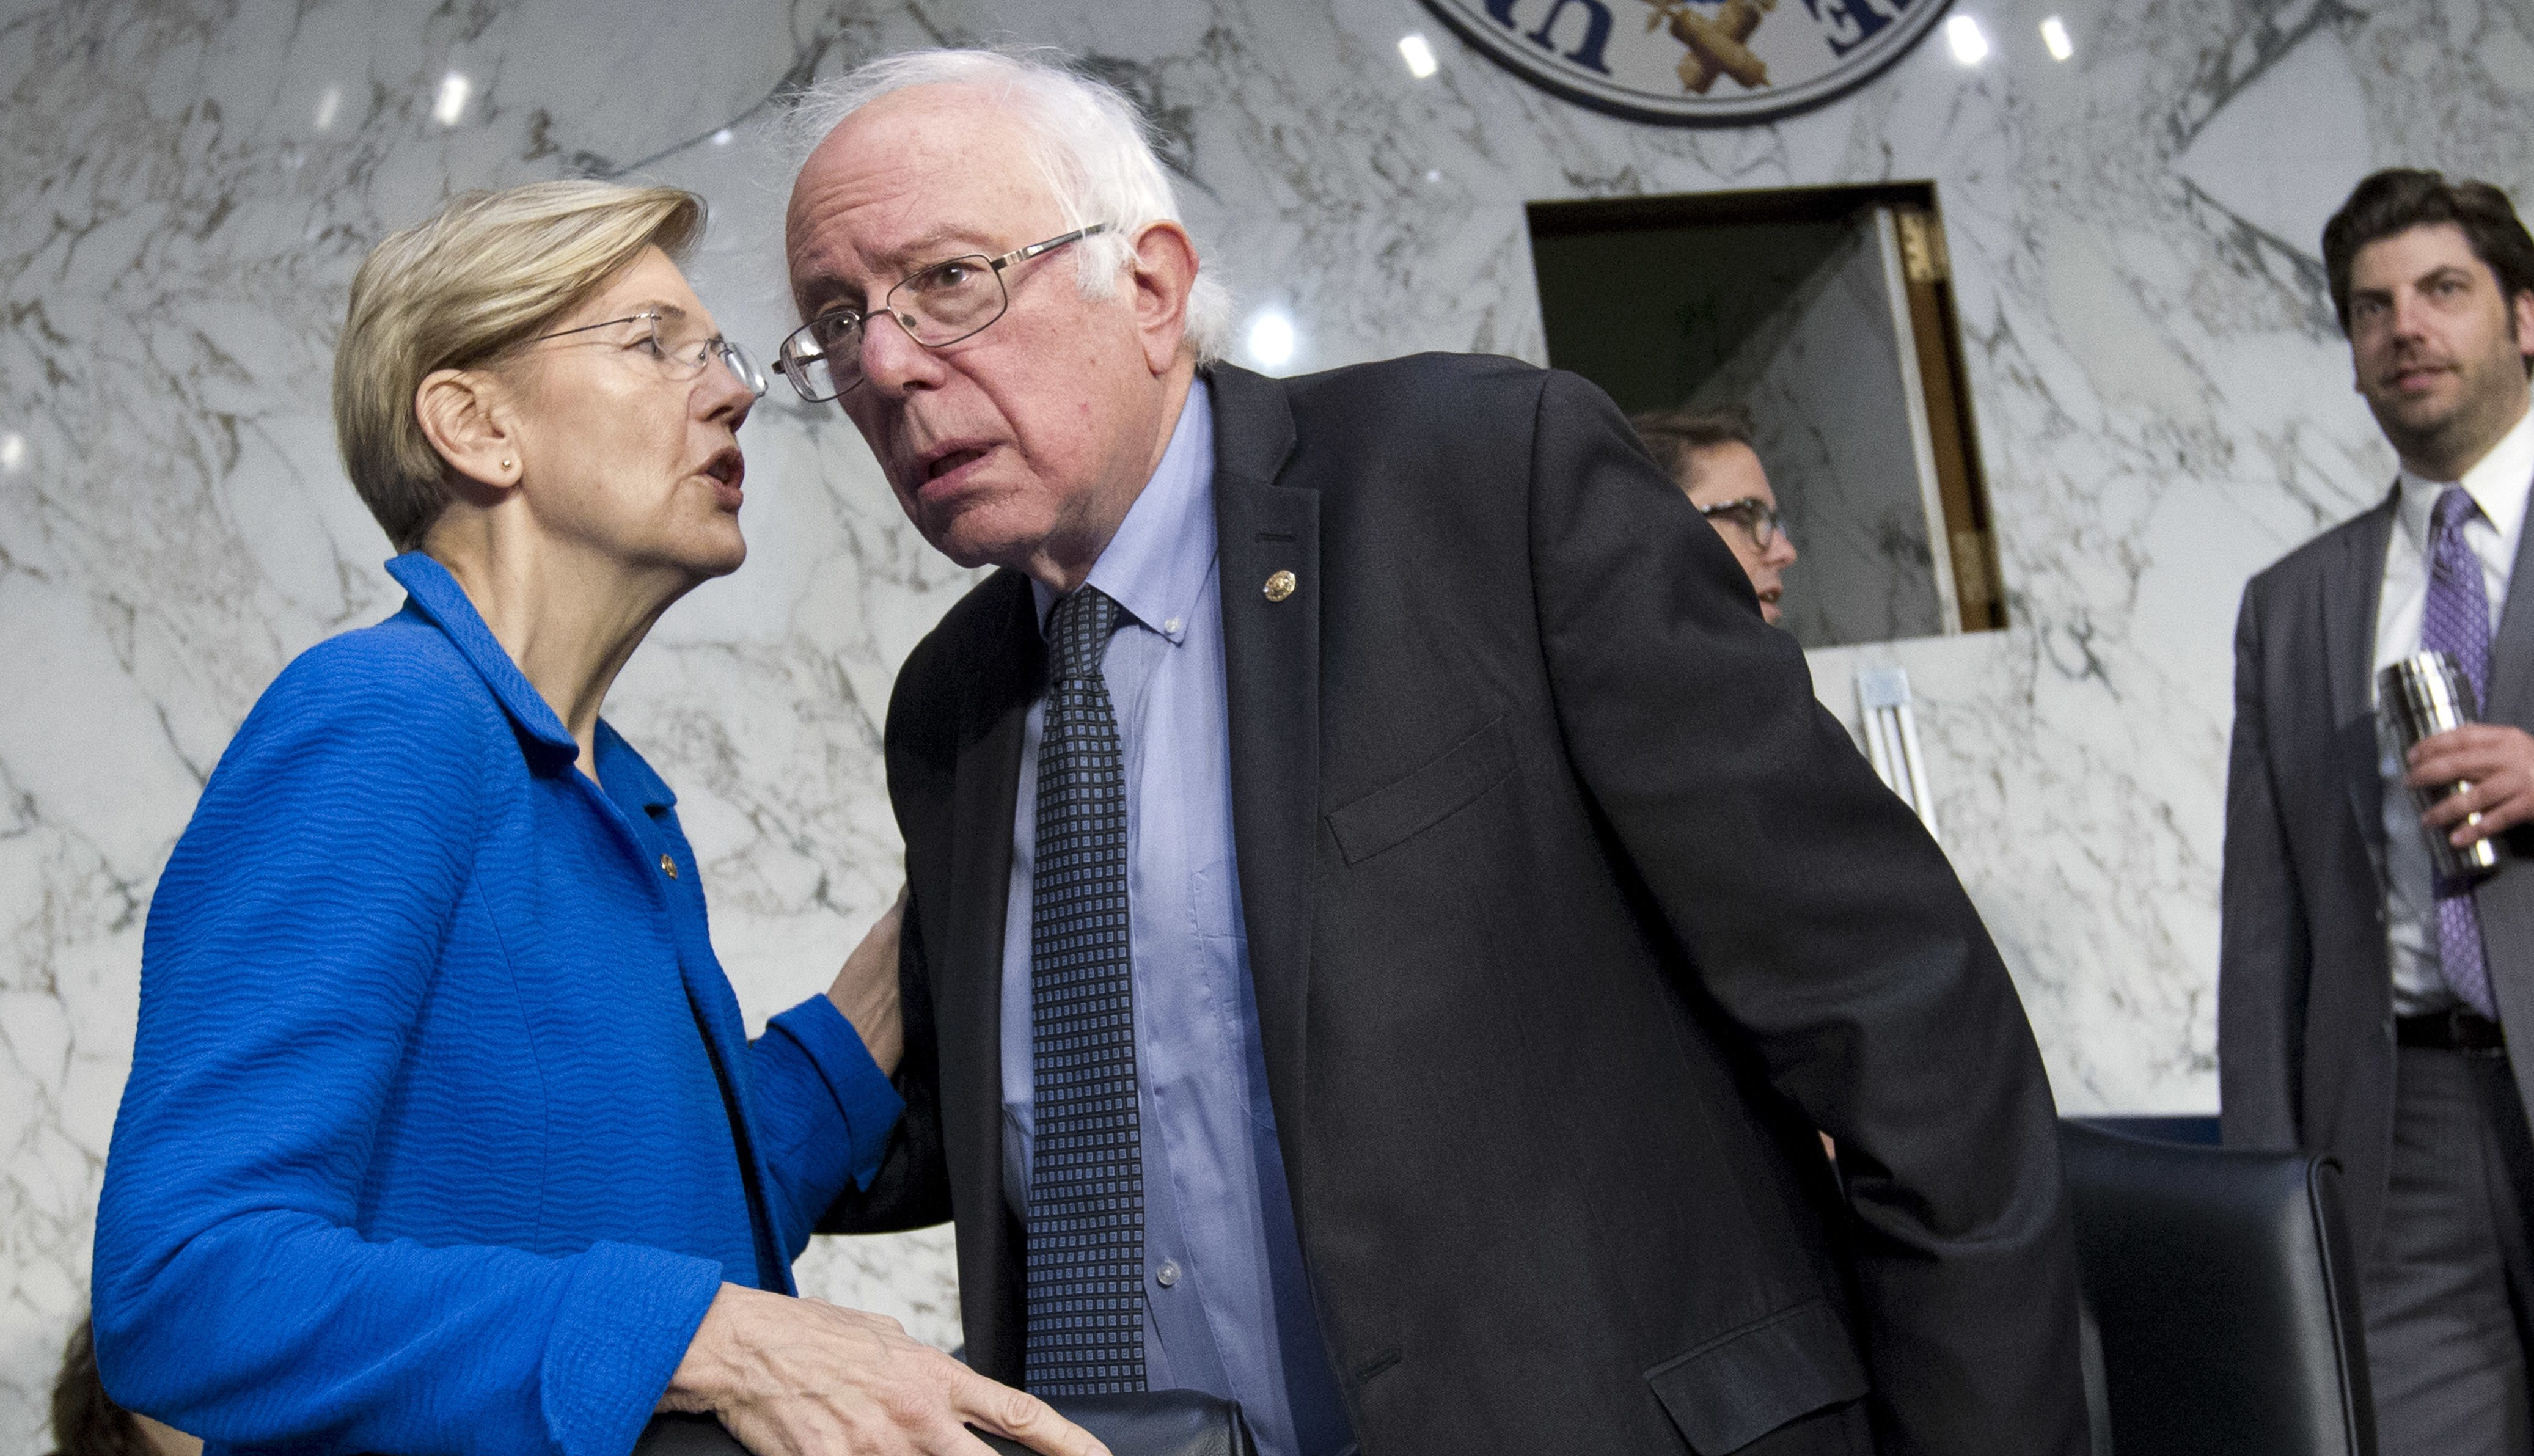 Sen. Elizabeth Warren, D-Mass. speaks with Sen. Bernie Sanders, I-Vt. at the Senate Health, Education, Labor, and Pensions Committee hearing with governors to discuses ways to stabilize health insurance markets, on Capitol Hill in Washington, Thursday, Sept. 7, 2017. ( AP Photo/Jose Luis Magana)